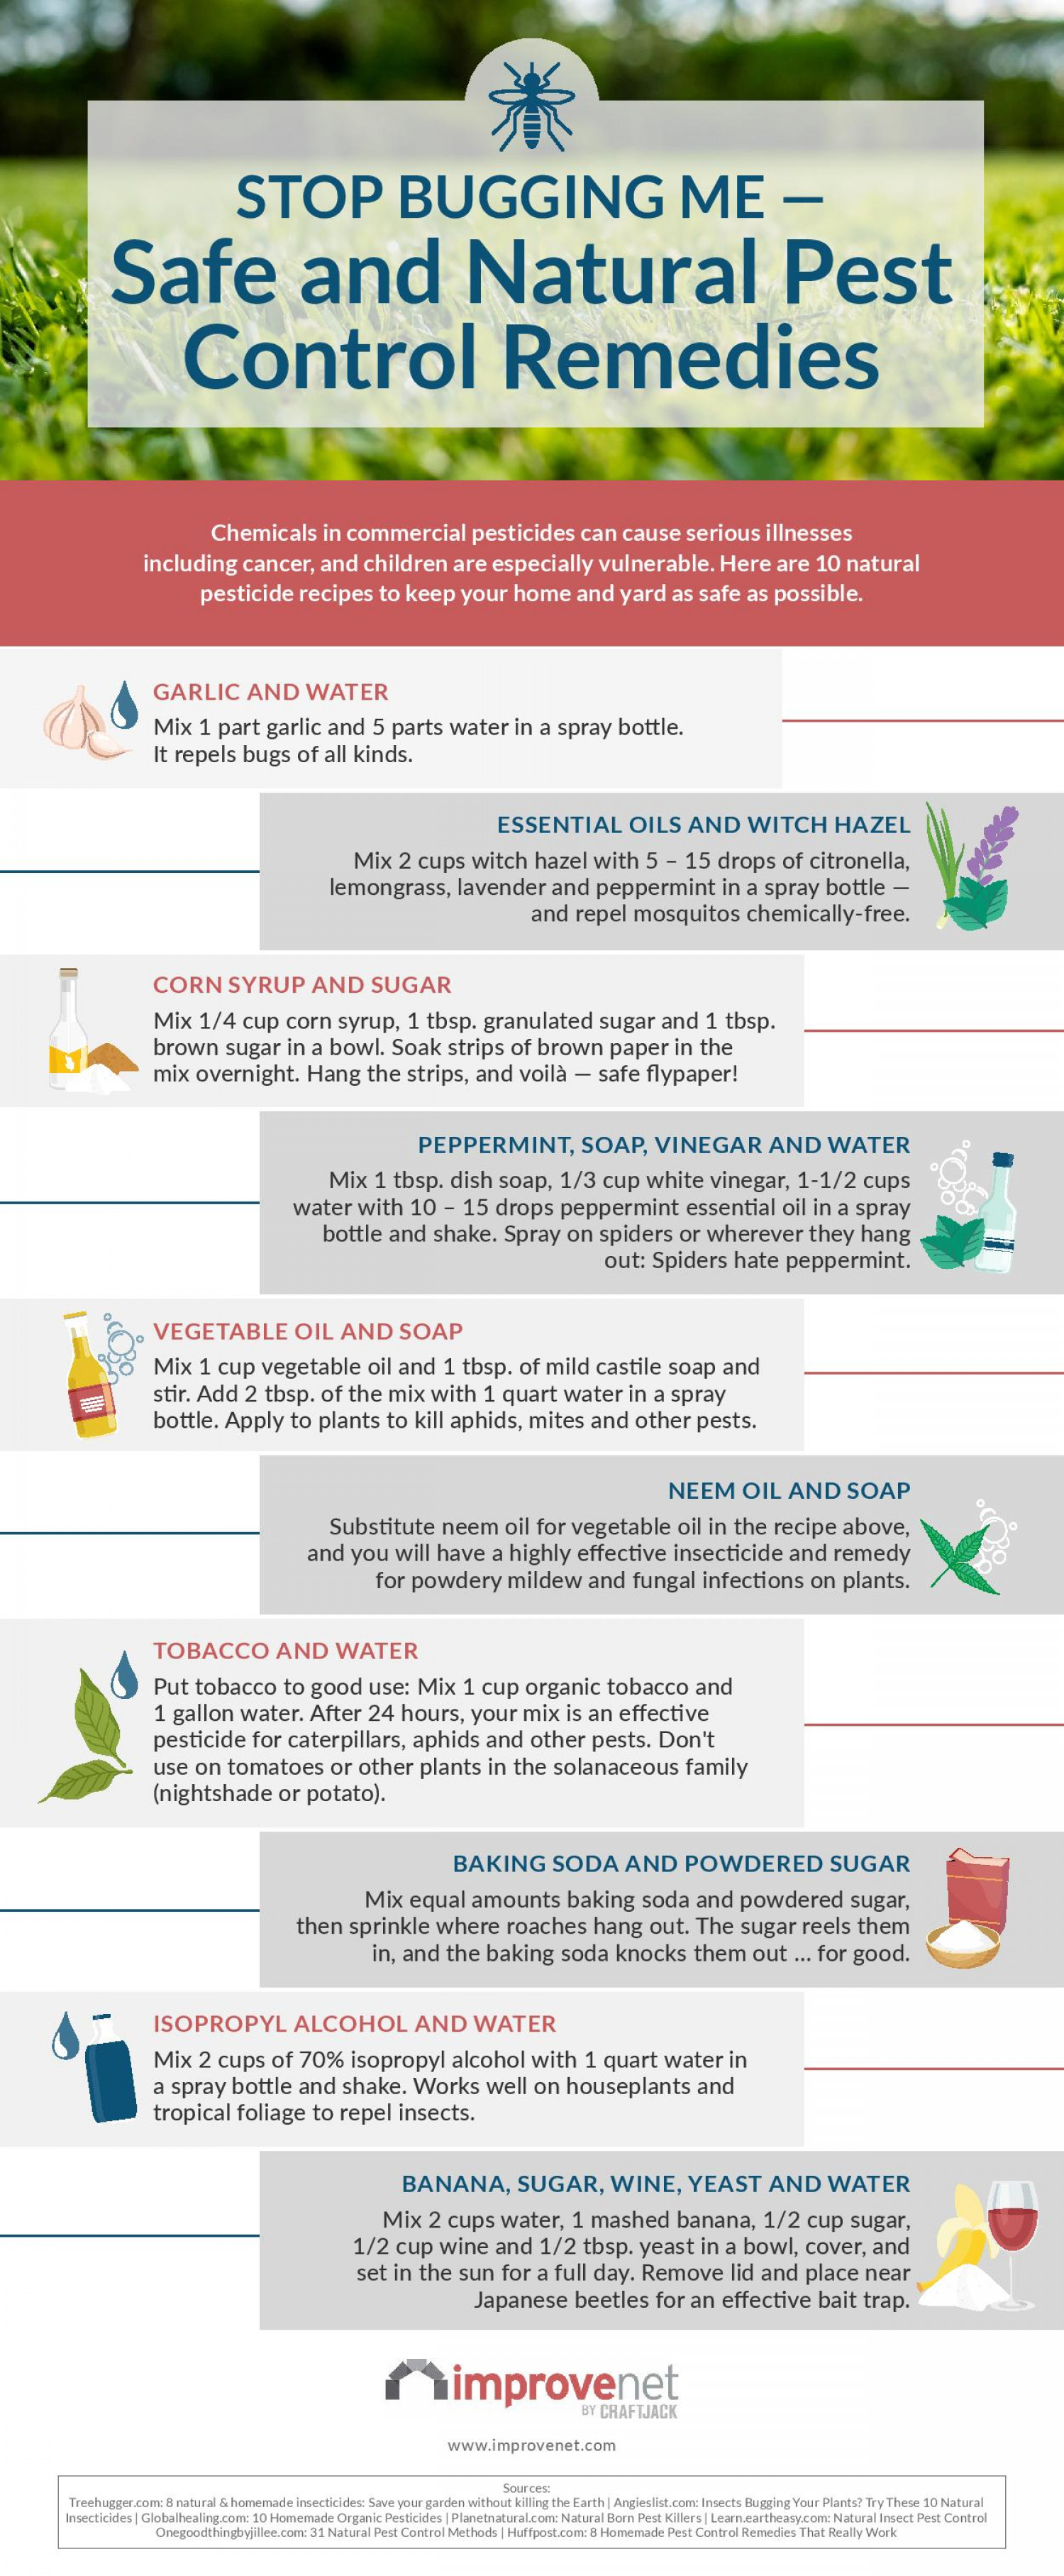 Stop Bugging Me- Safe and Natural Pest Control Remedies Infographic